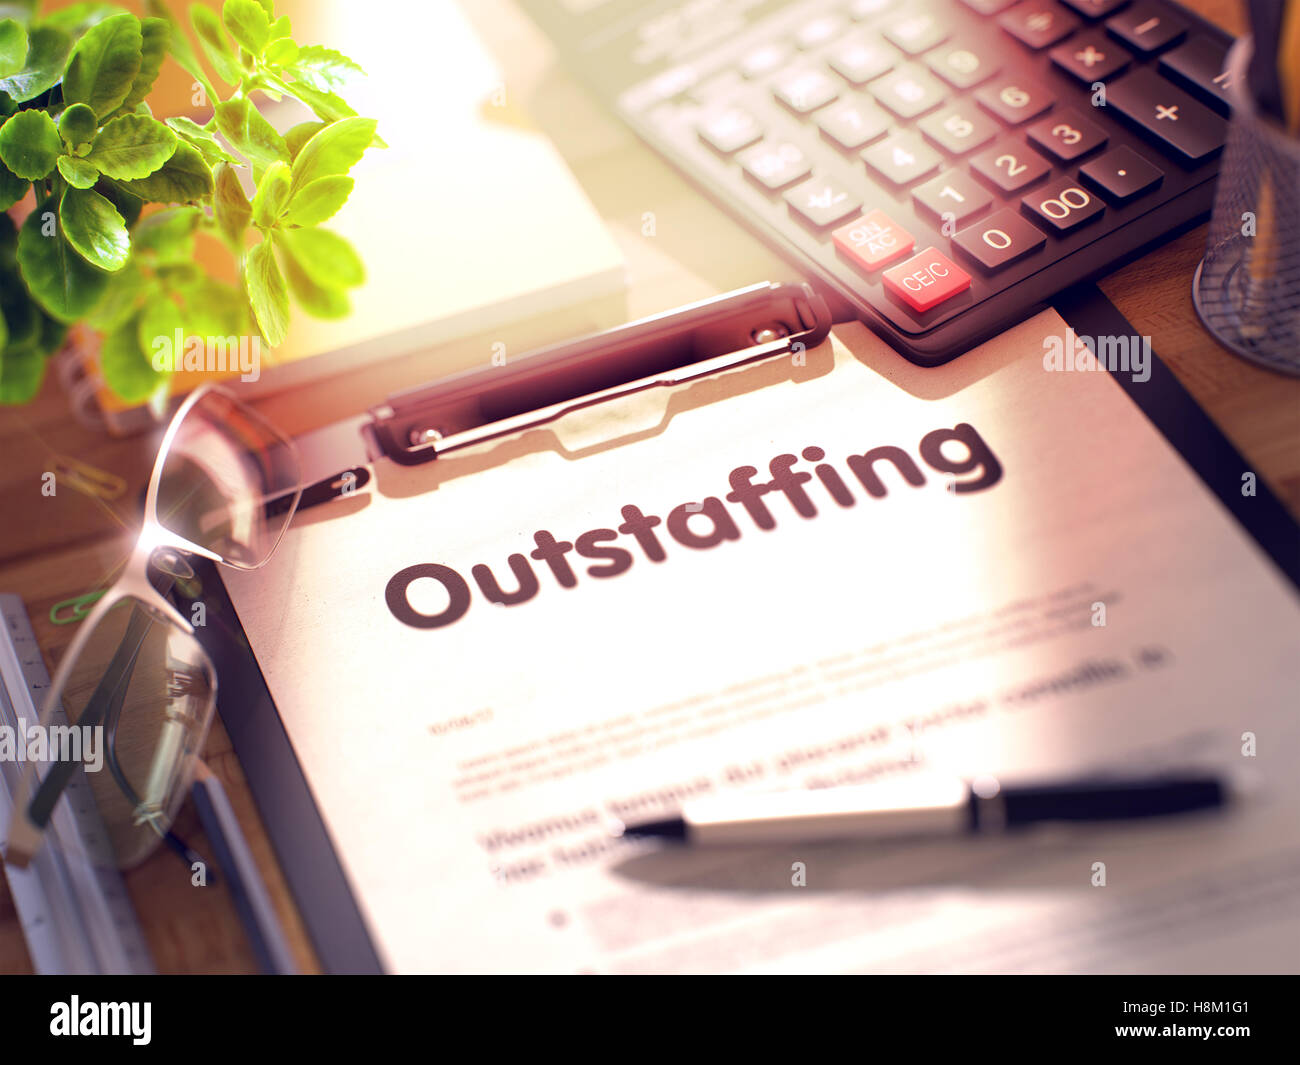 Clipboard with Outstaffing. 3D. - Stock Image